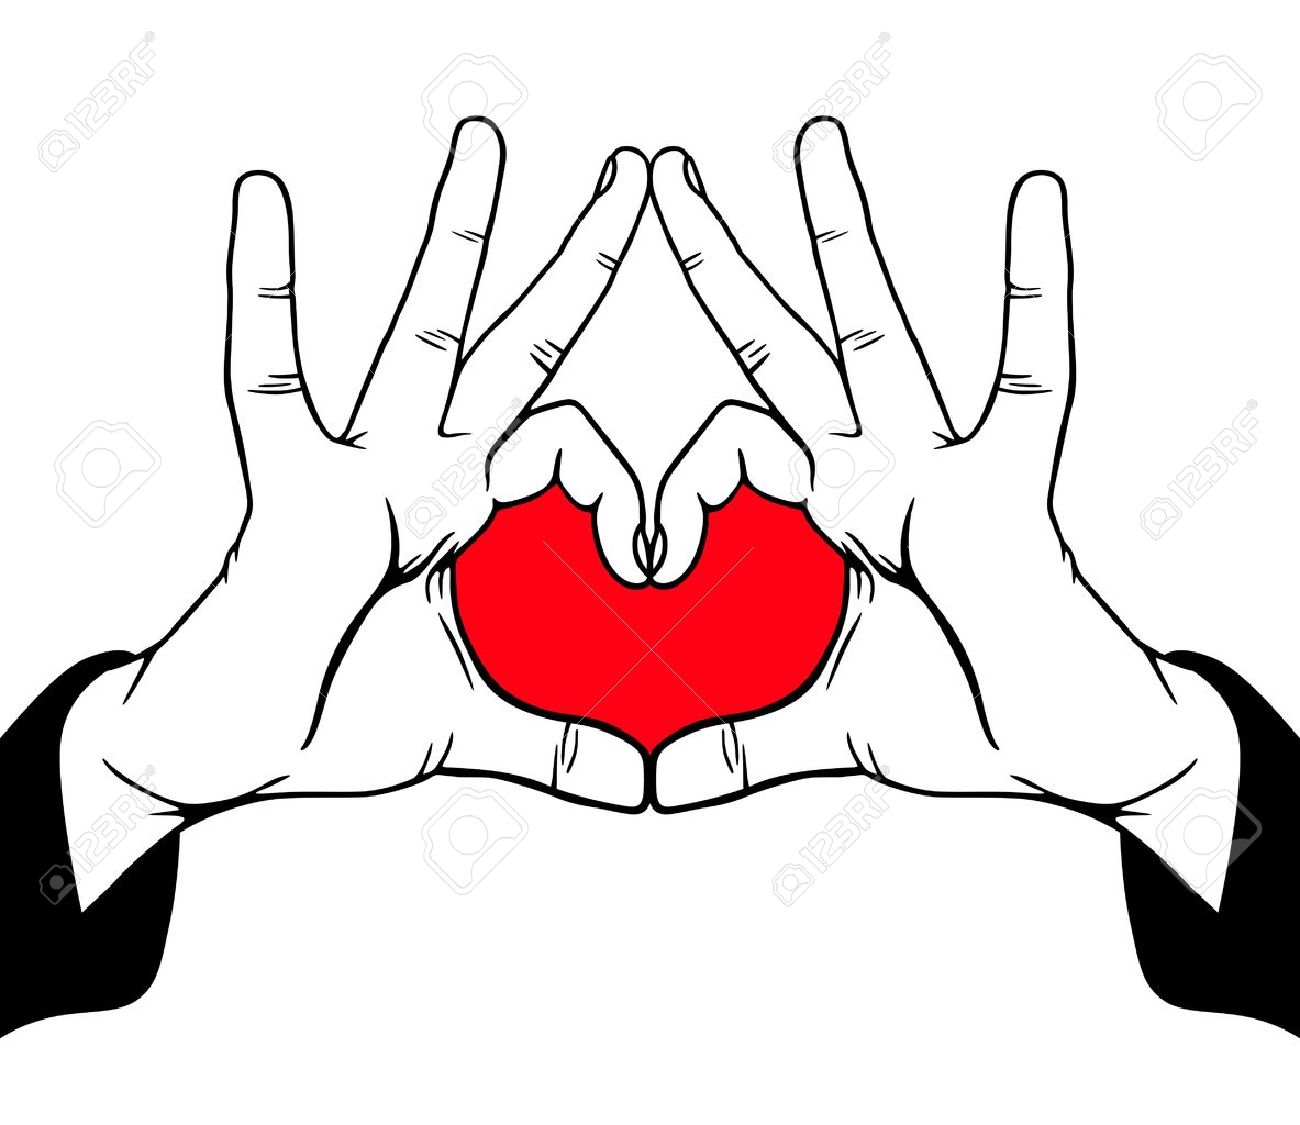 Hands symbolic love, vector illustration Stock Vector - 11854641